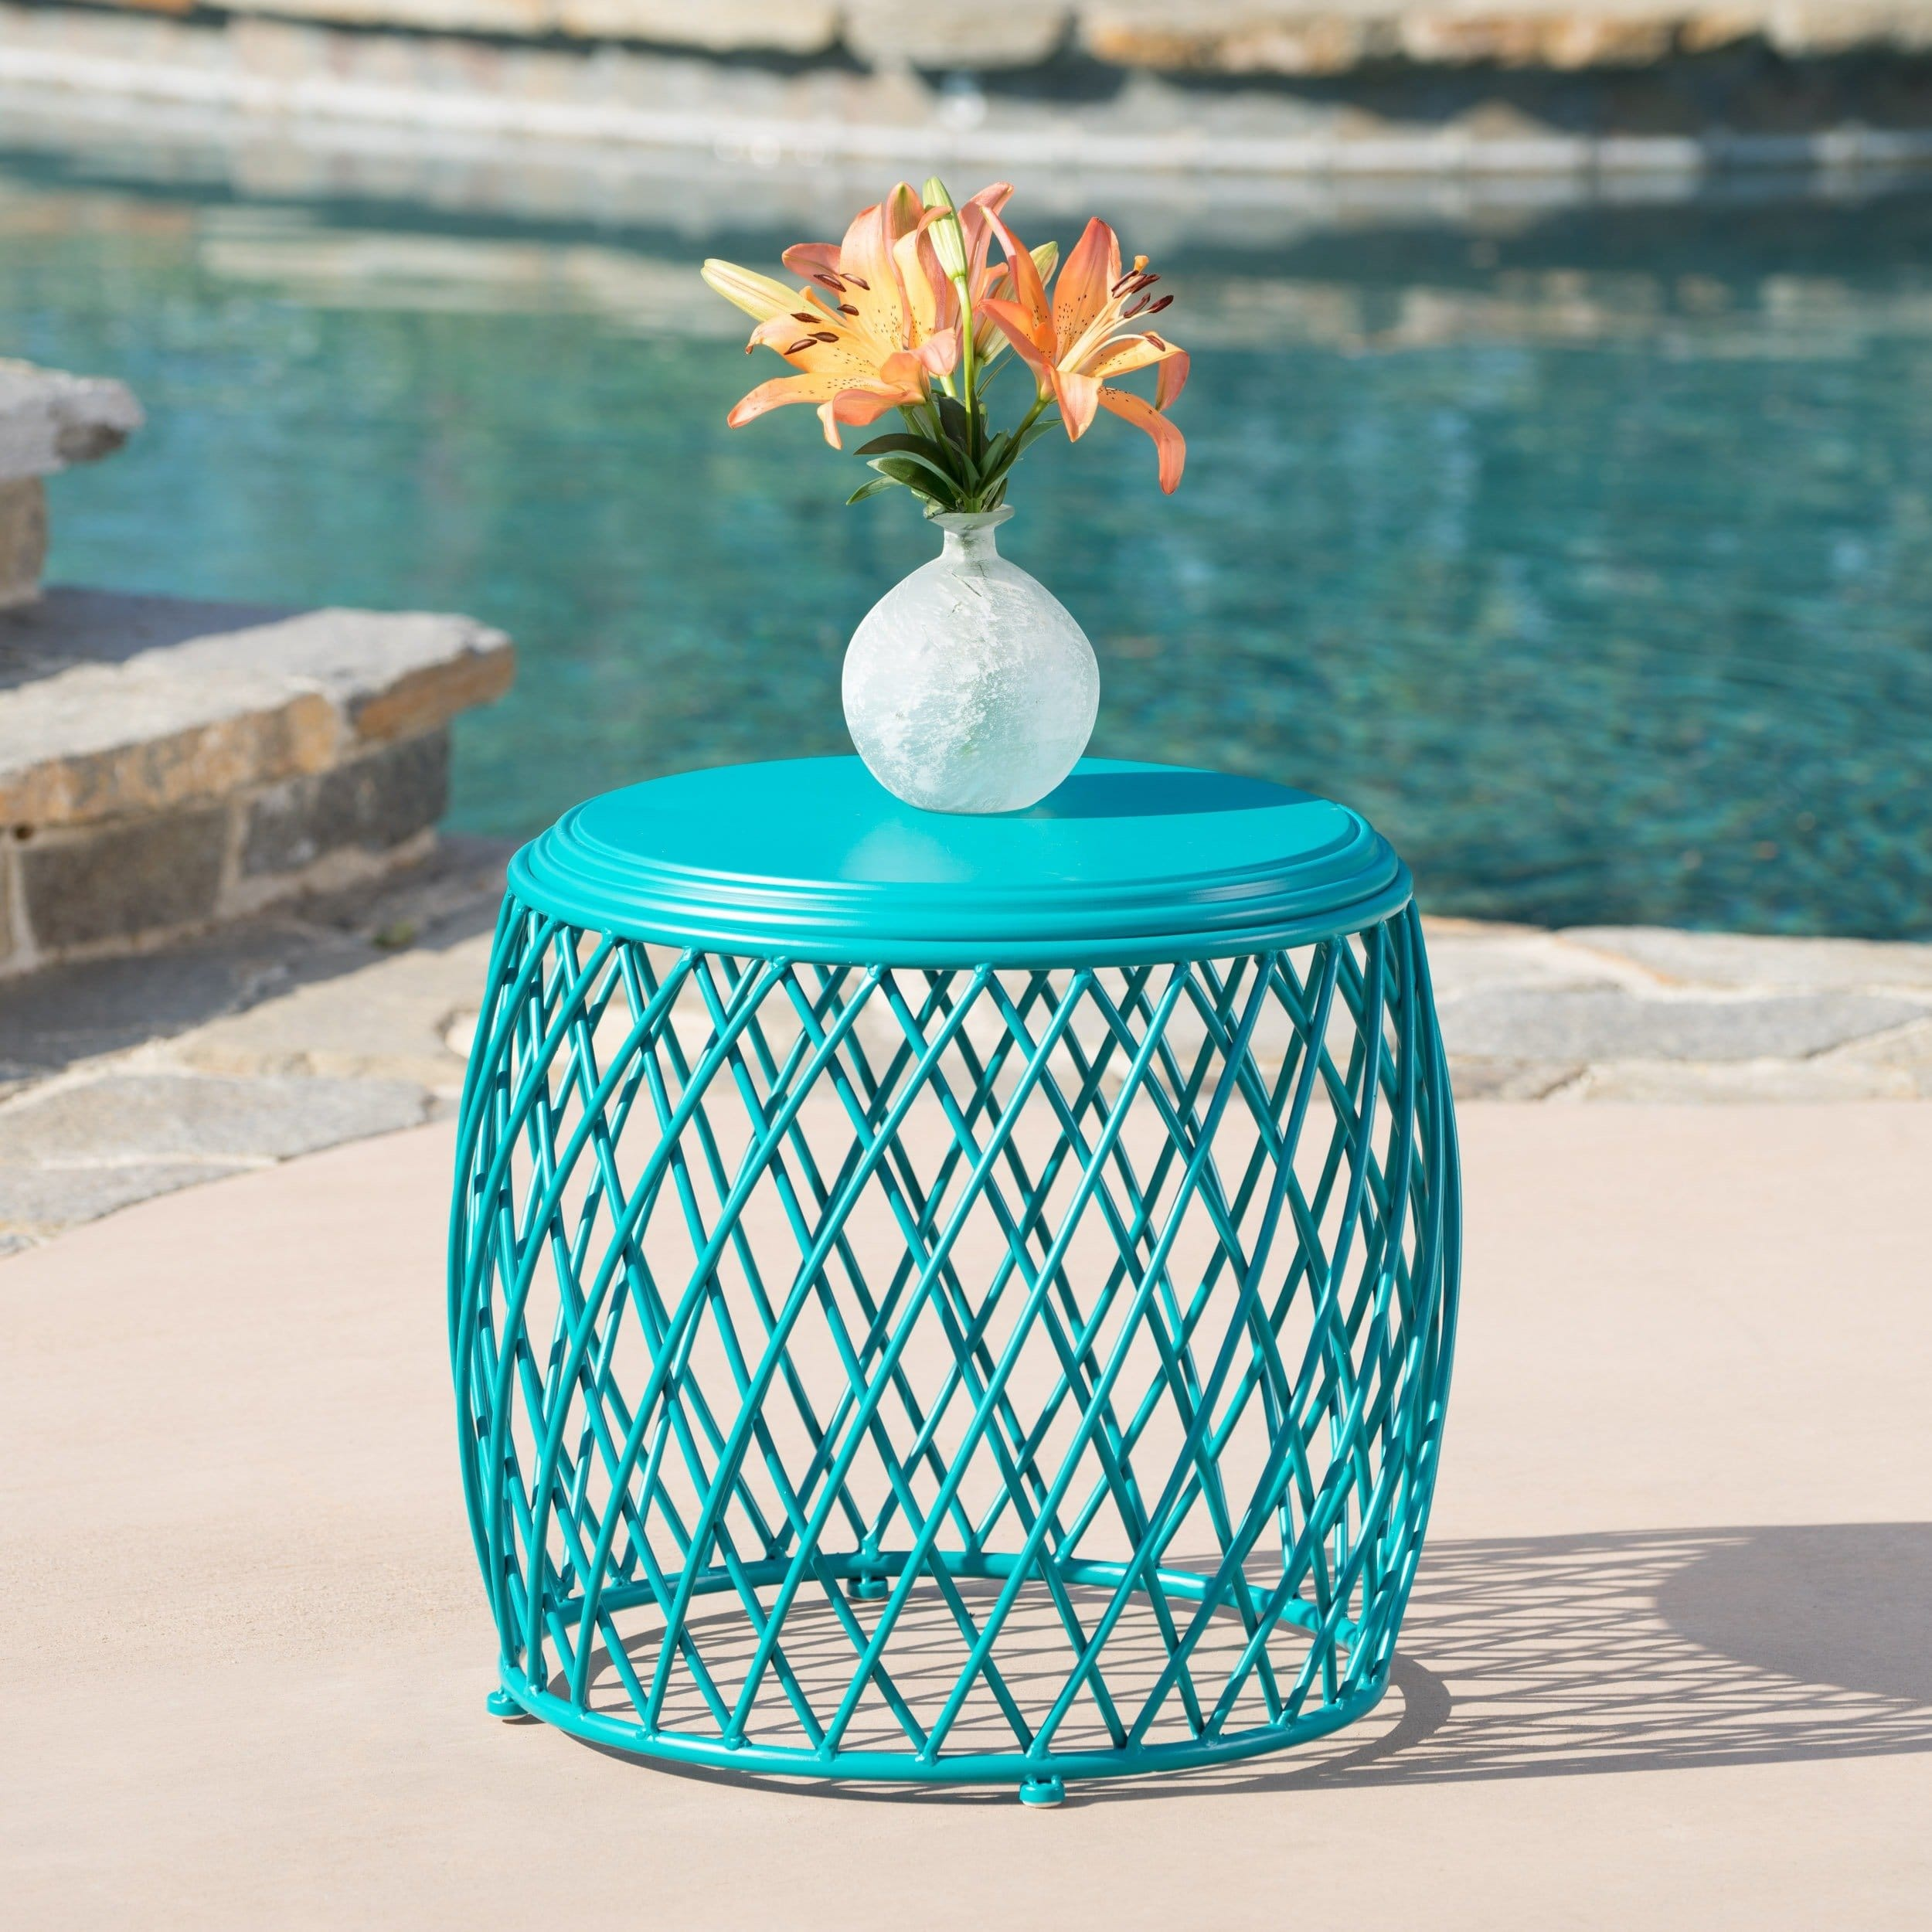 outdoor coffee side tables our best alamera inch lattice table christopher knight home folding patio accent furniture pier wall decor clearance cloth dinner napkins legs stand